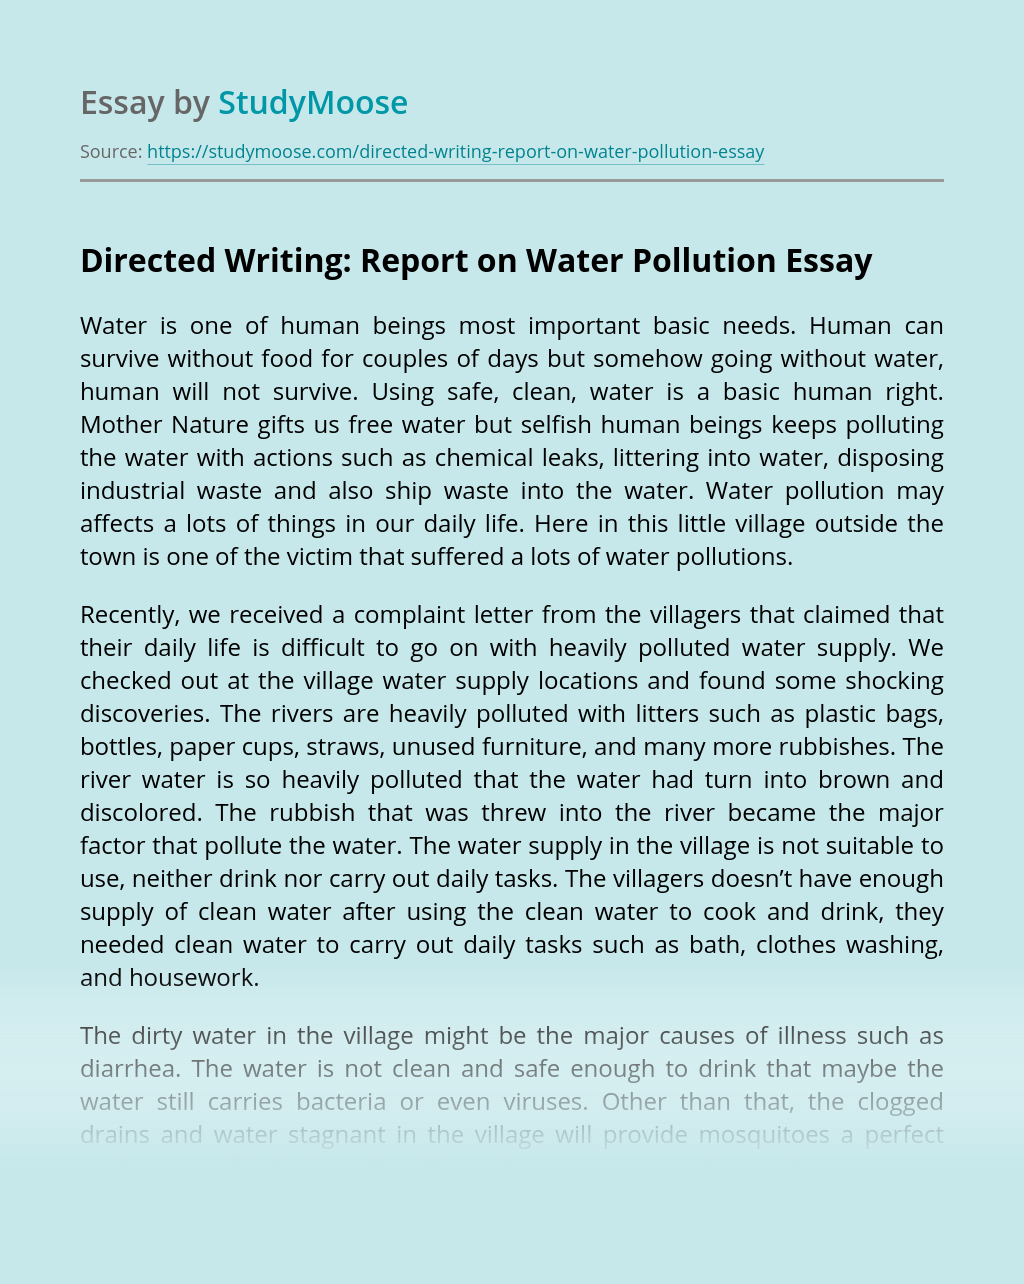 Directed Writing: Report on Water Pollution